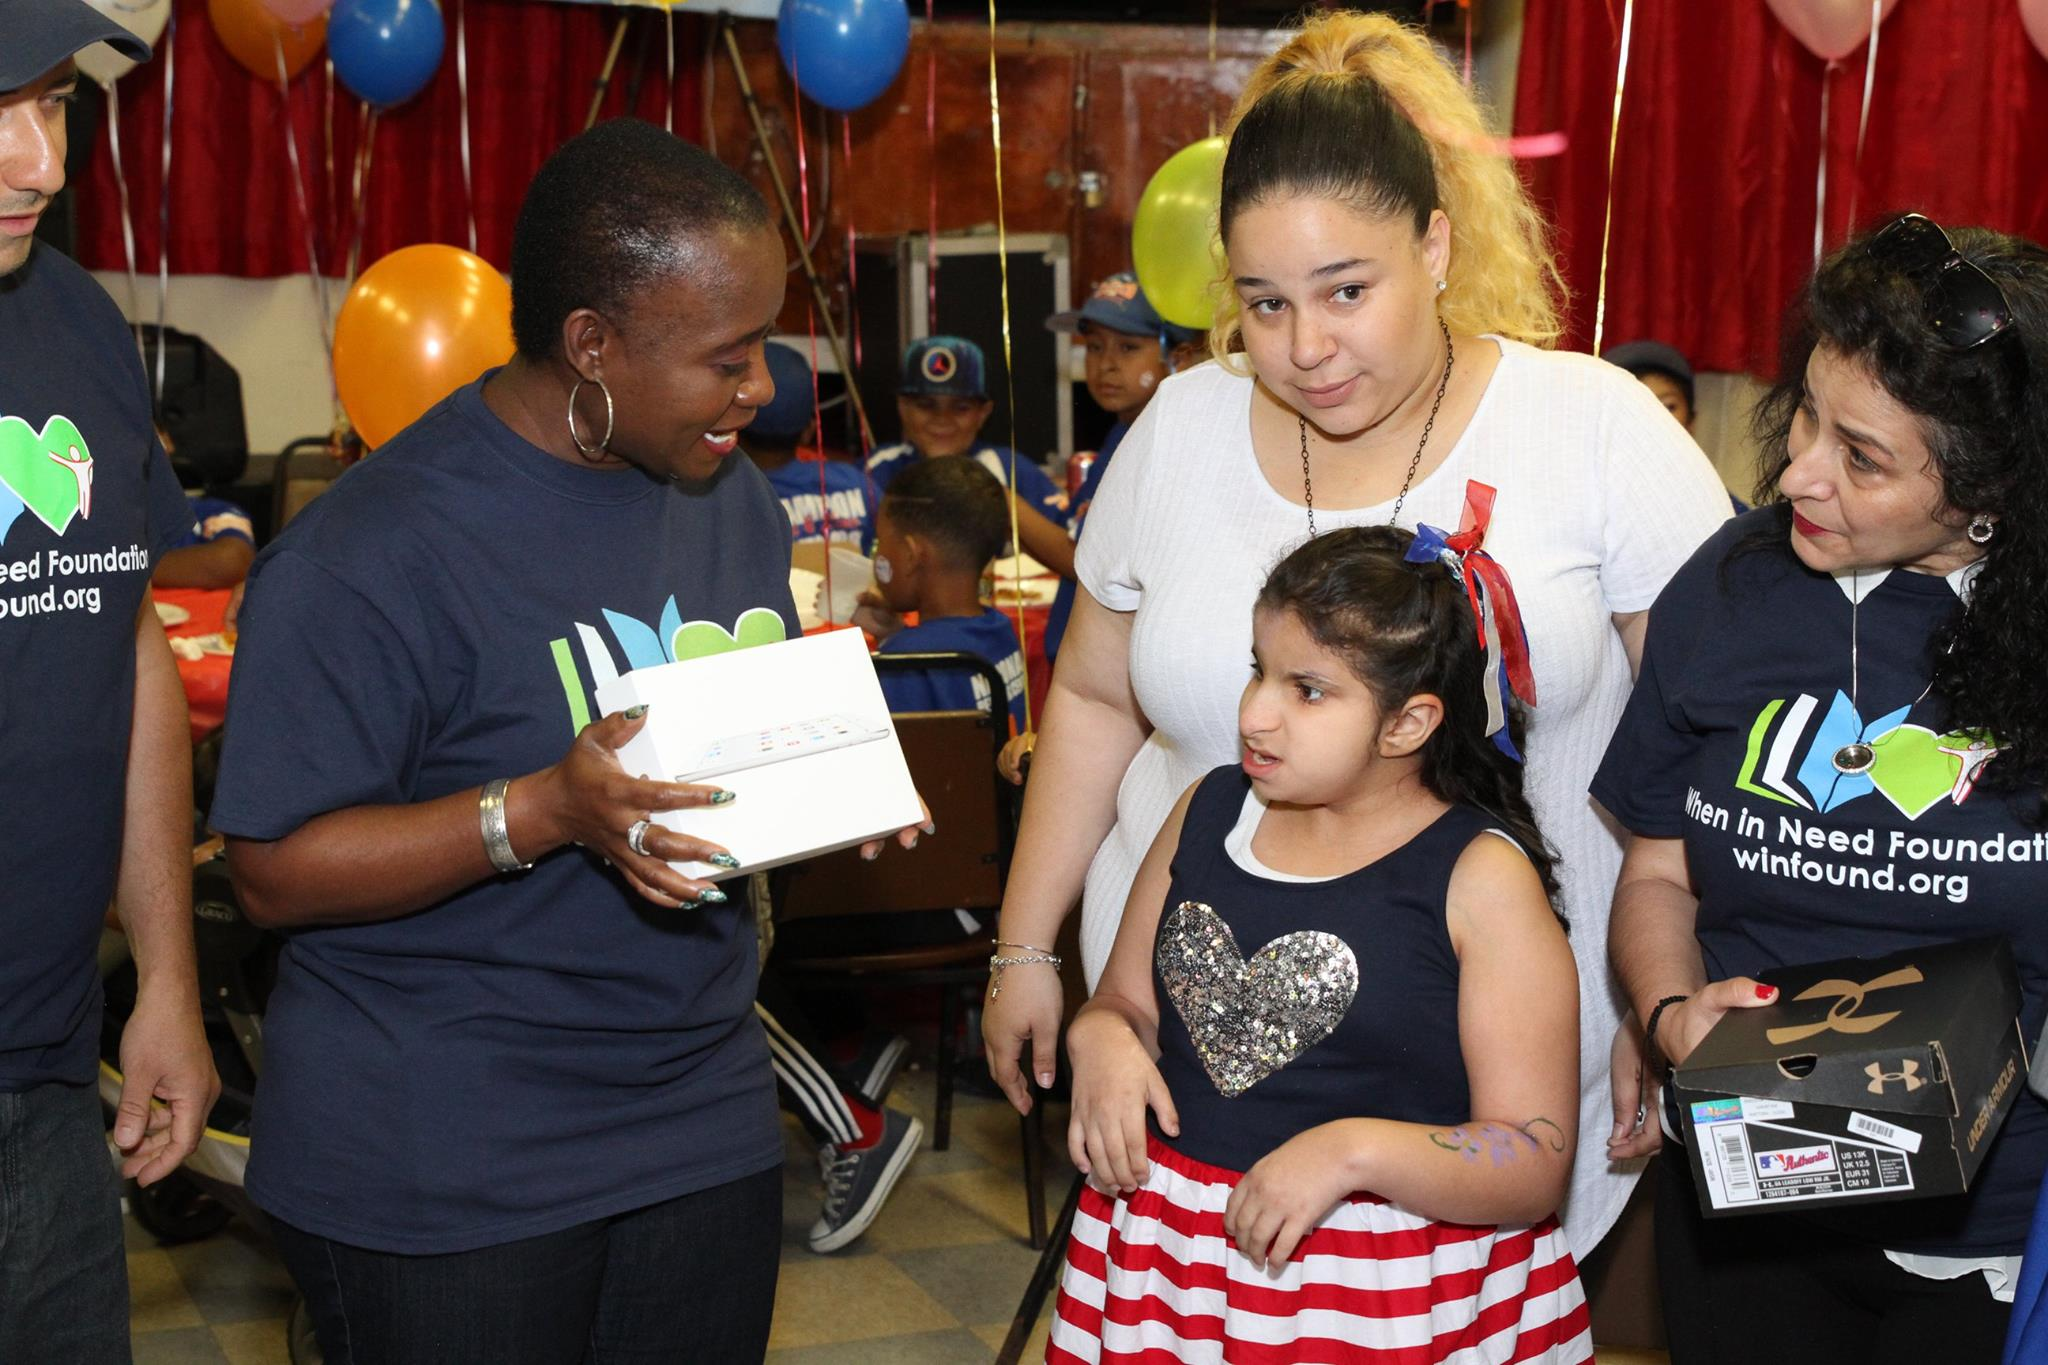 Ms. Chetachi Ecton presents young girl with Ipad